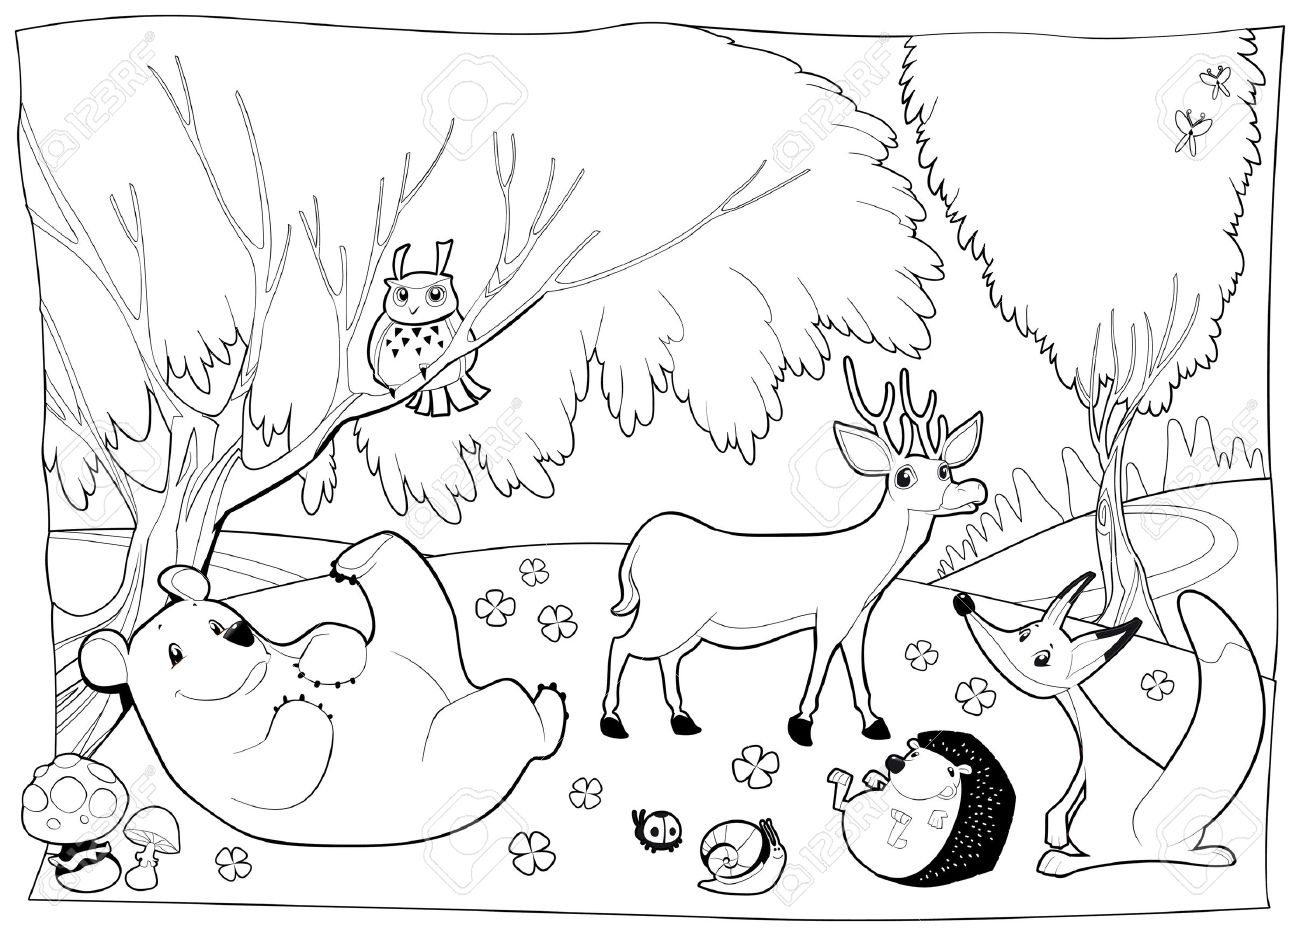 Animals In The Wood Black And White Royalty Free Cliparts Vectors And Stock Illustration Image 25316161